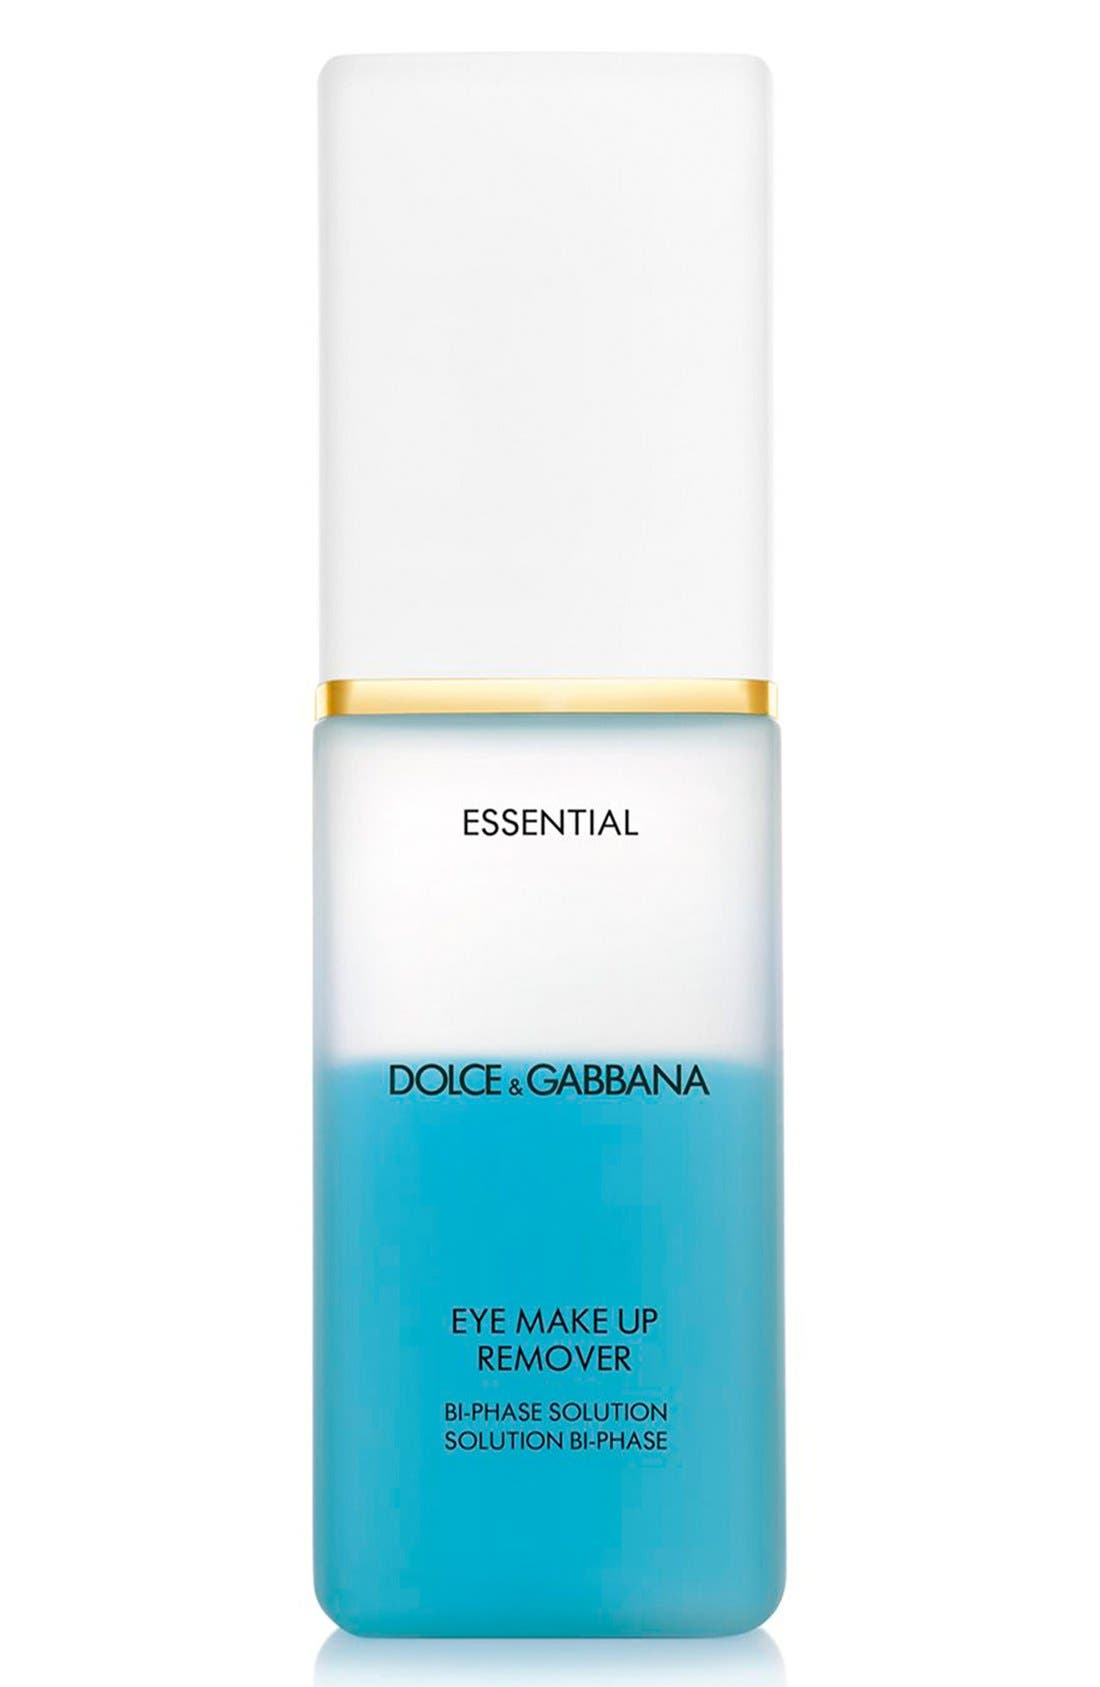 Dolce&Gabbana Beauty 'Essential' Eye Makeup Remover,                             Main thumbnail 1, color,                             000